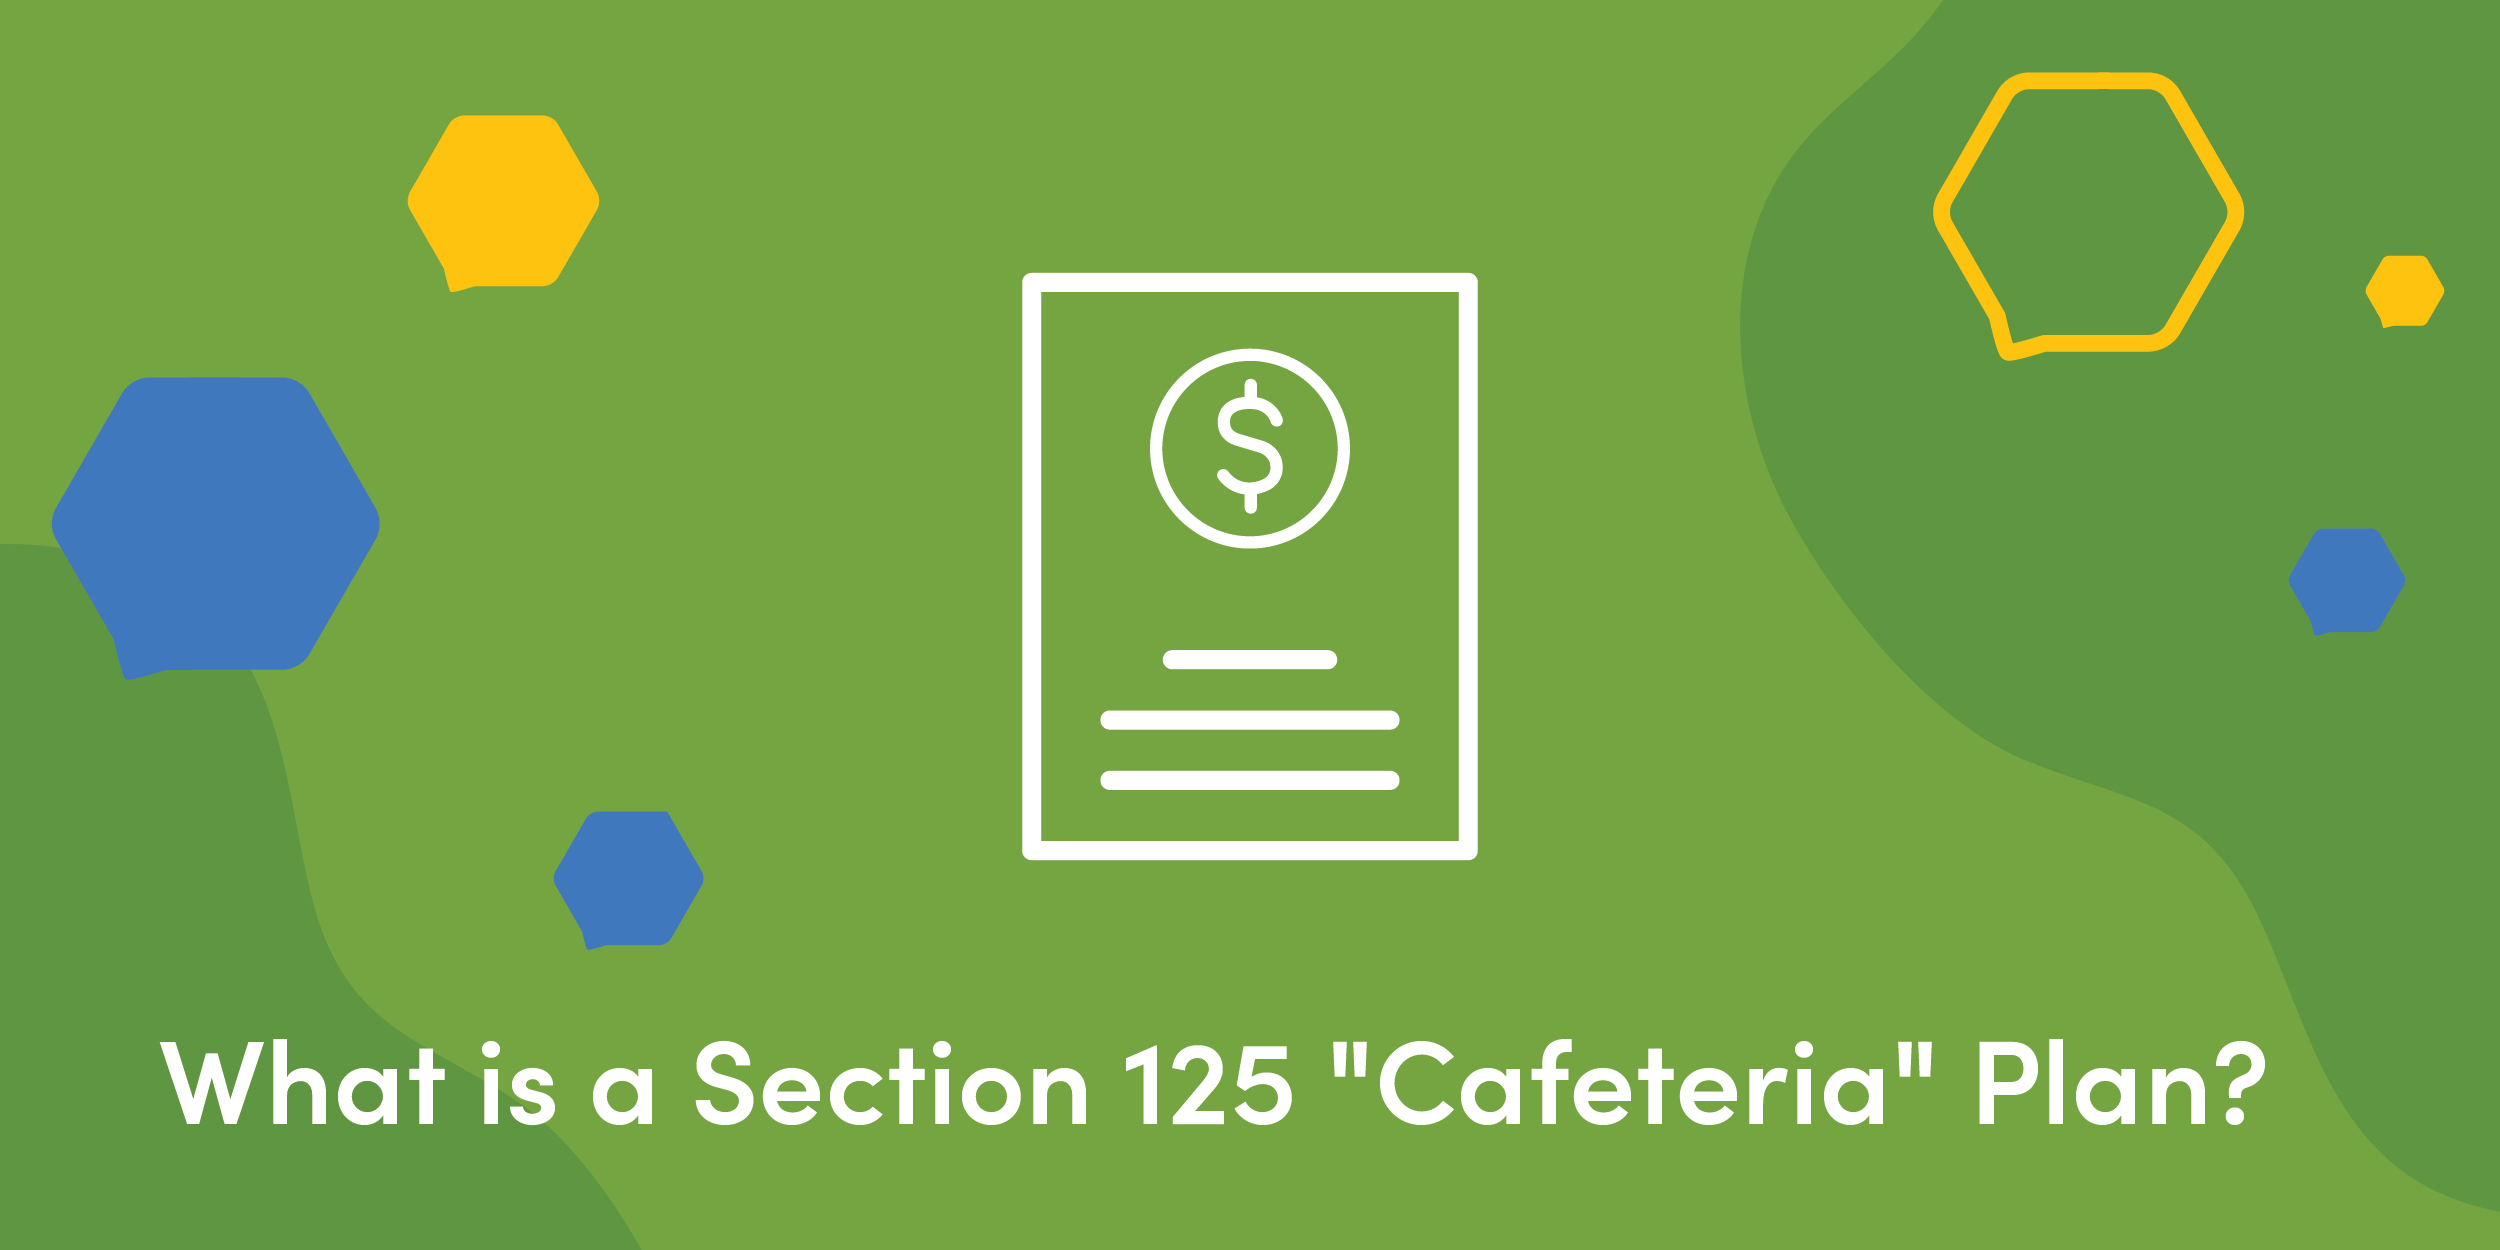 What is a Section 125 Cafeteria Plan?